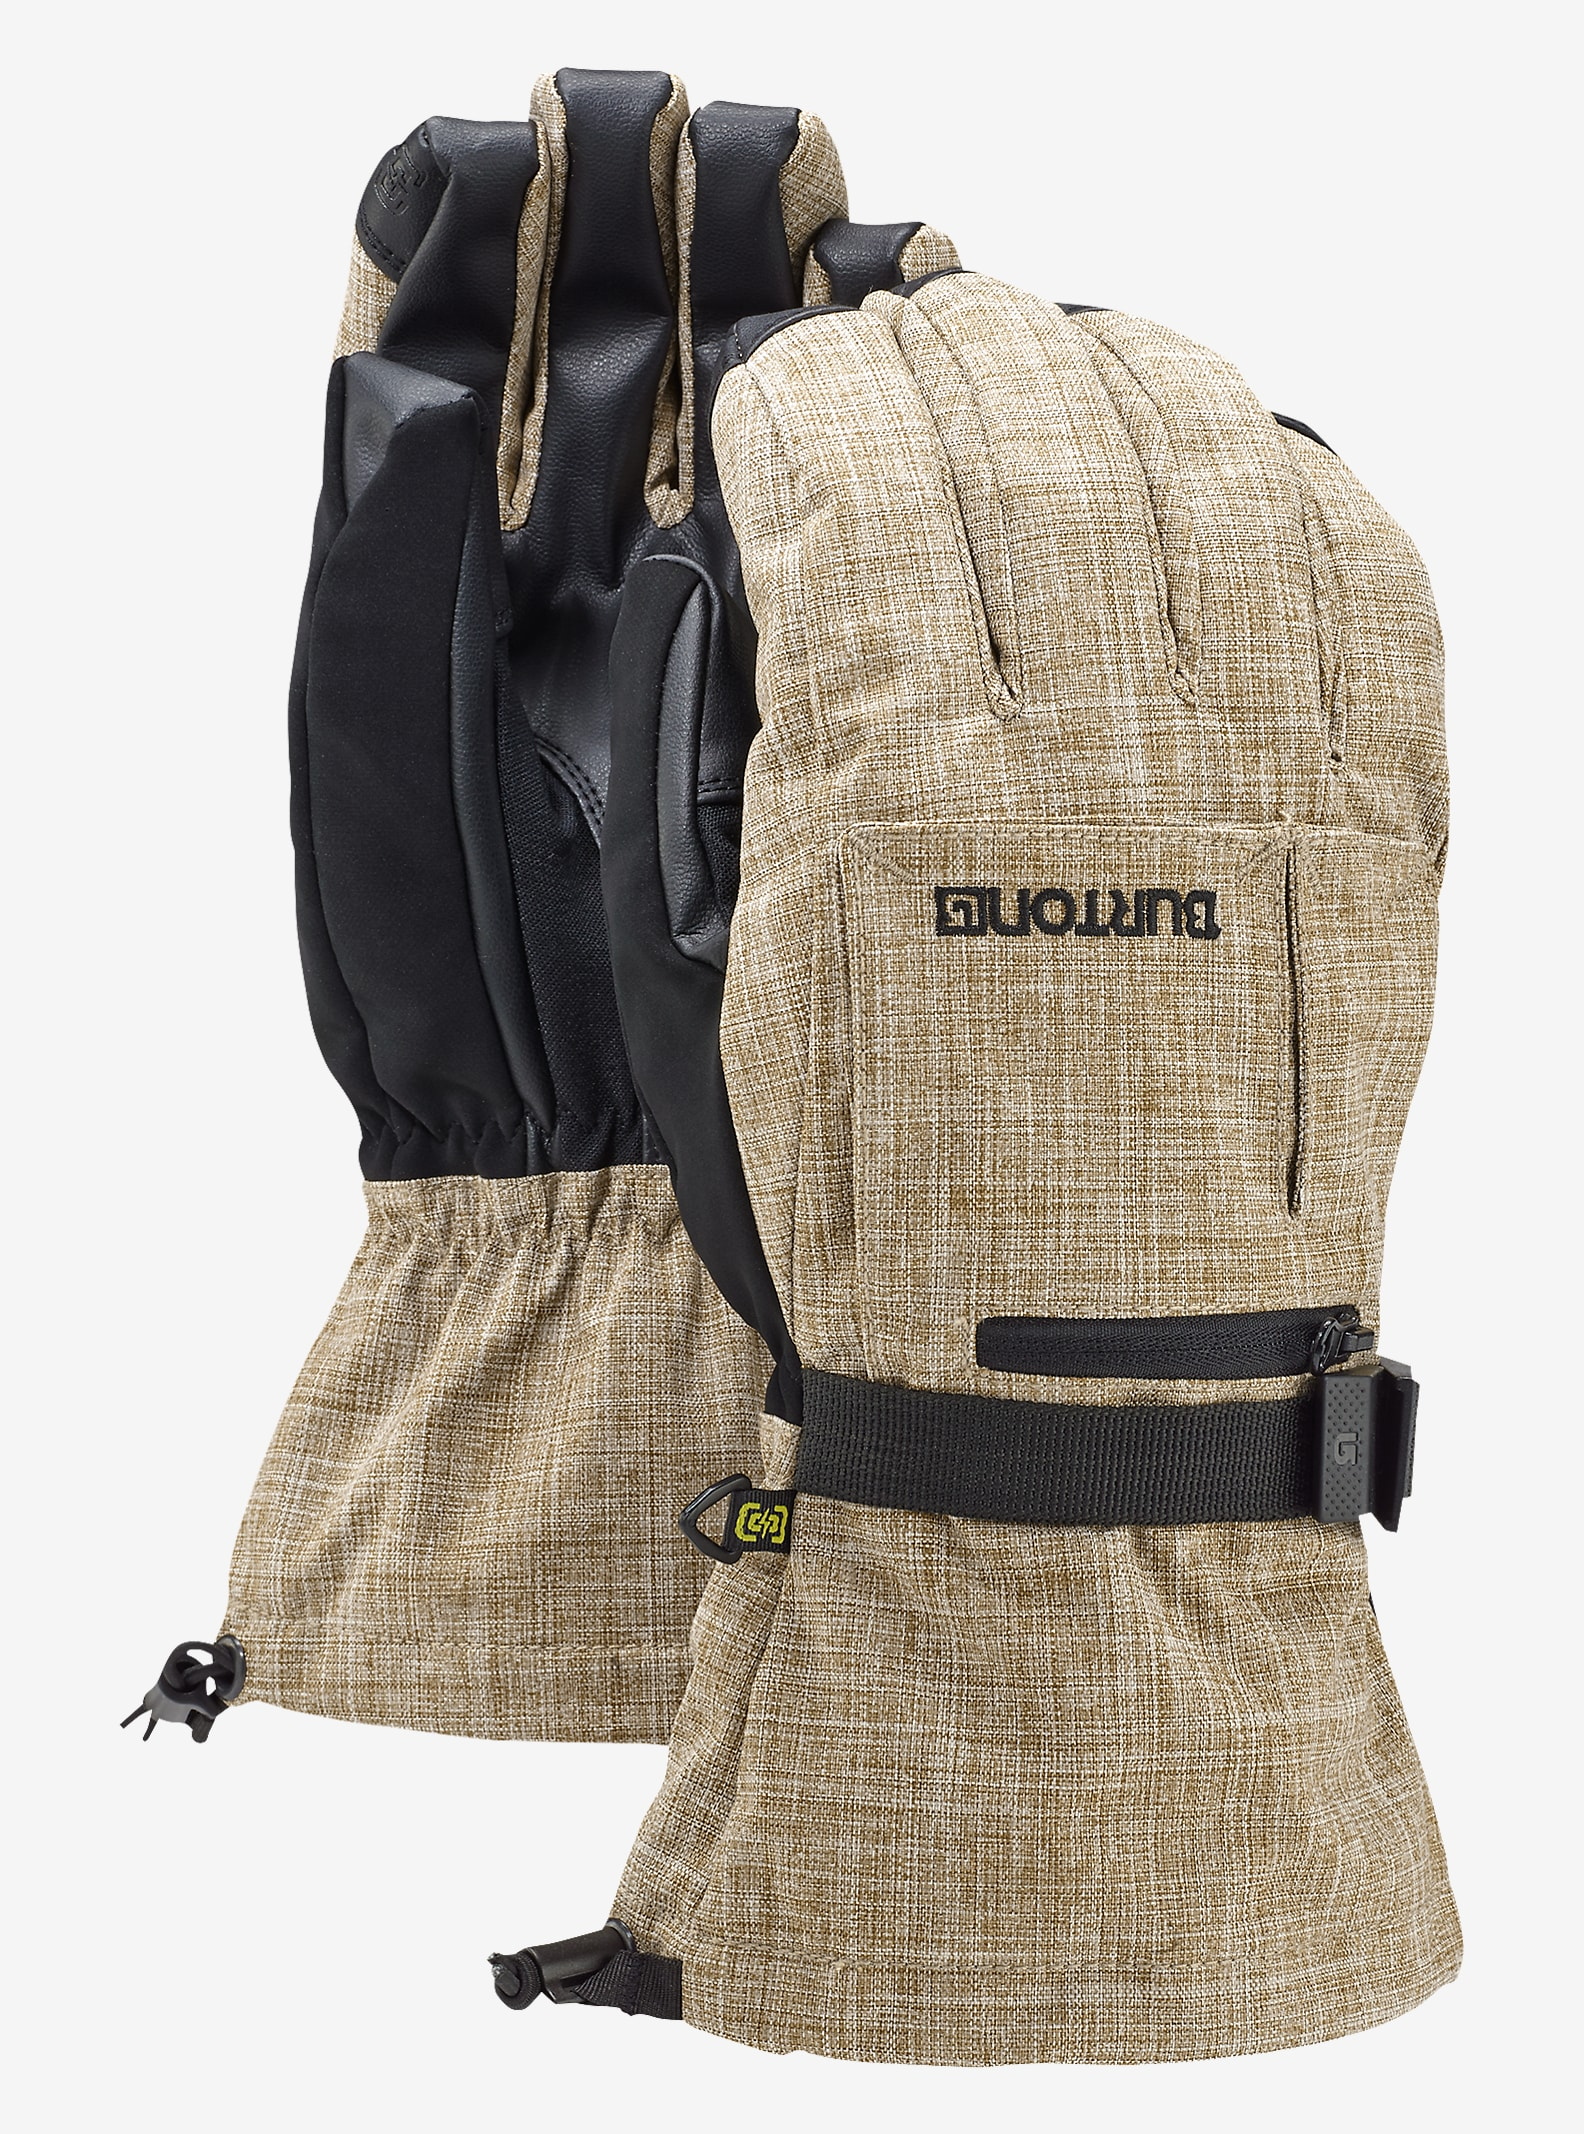 Burton Baker 2-In-1 Glove shown in Beaver Tail Melange